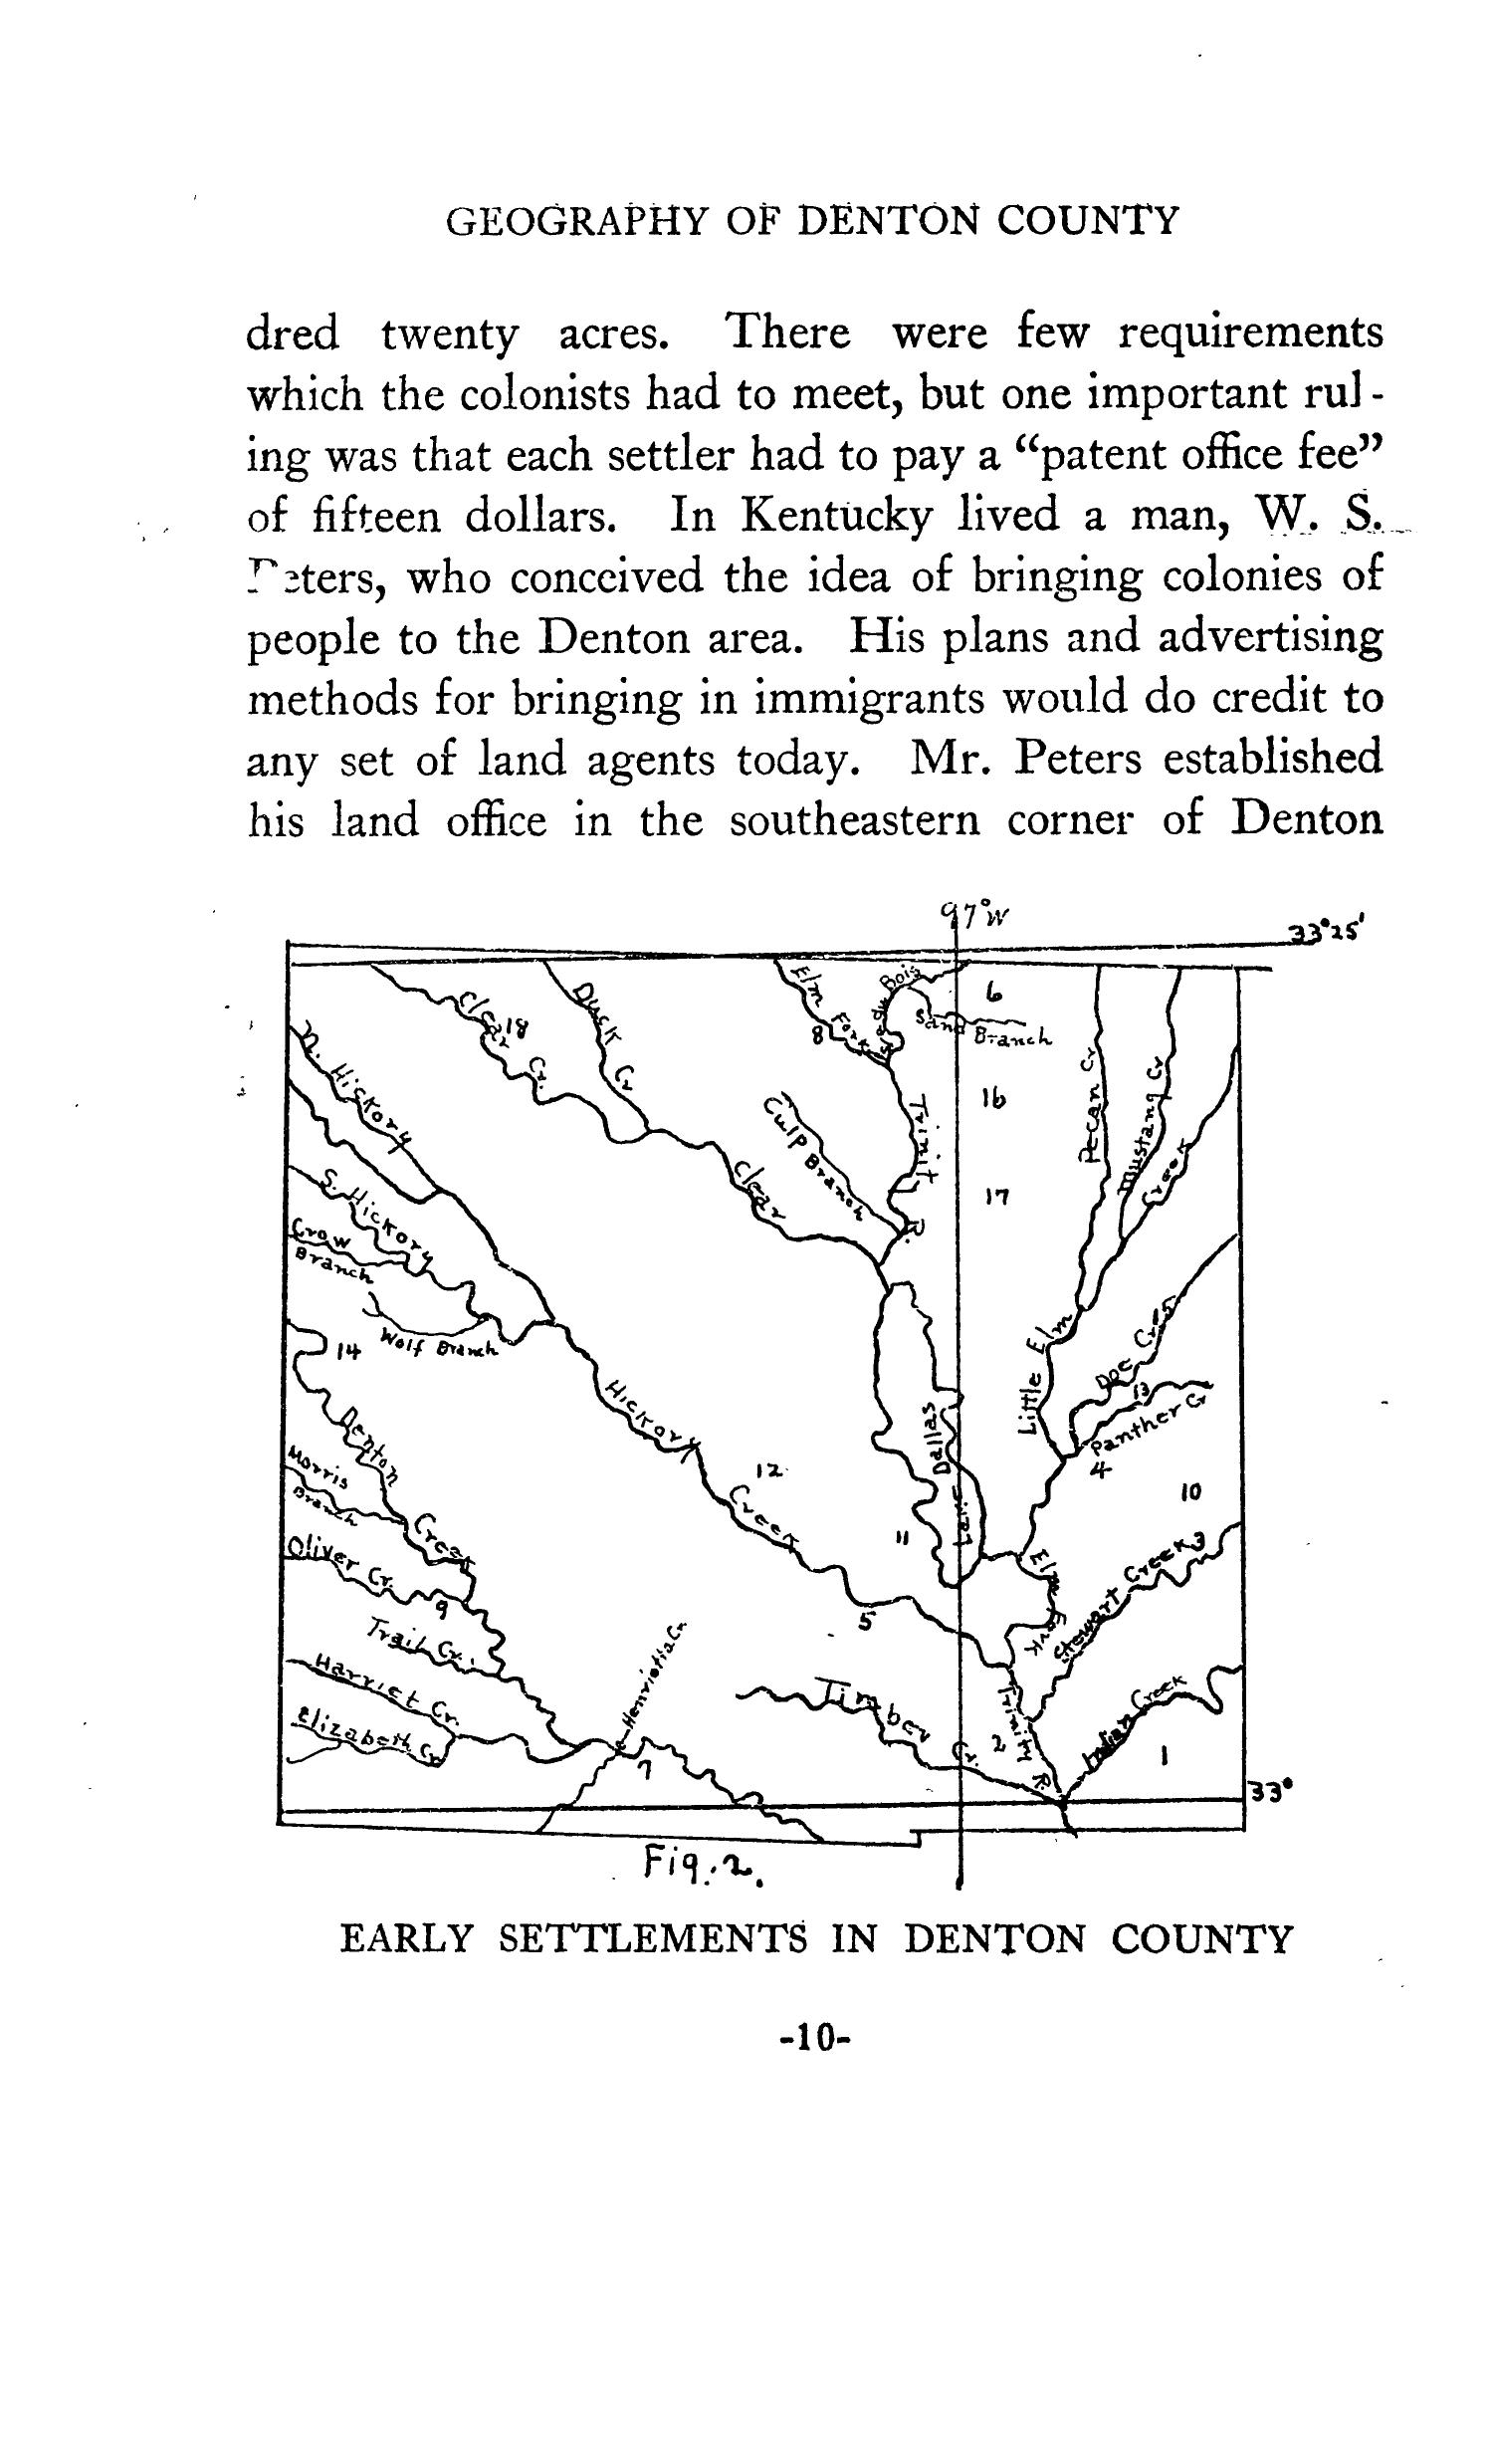 Geography of Denton County                                                                                                      10